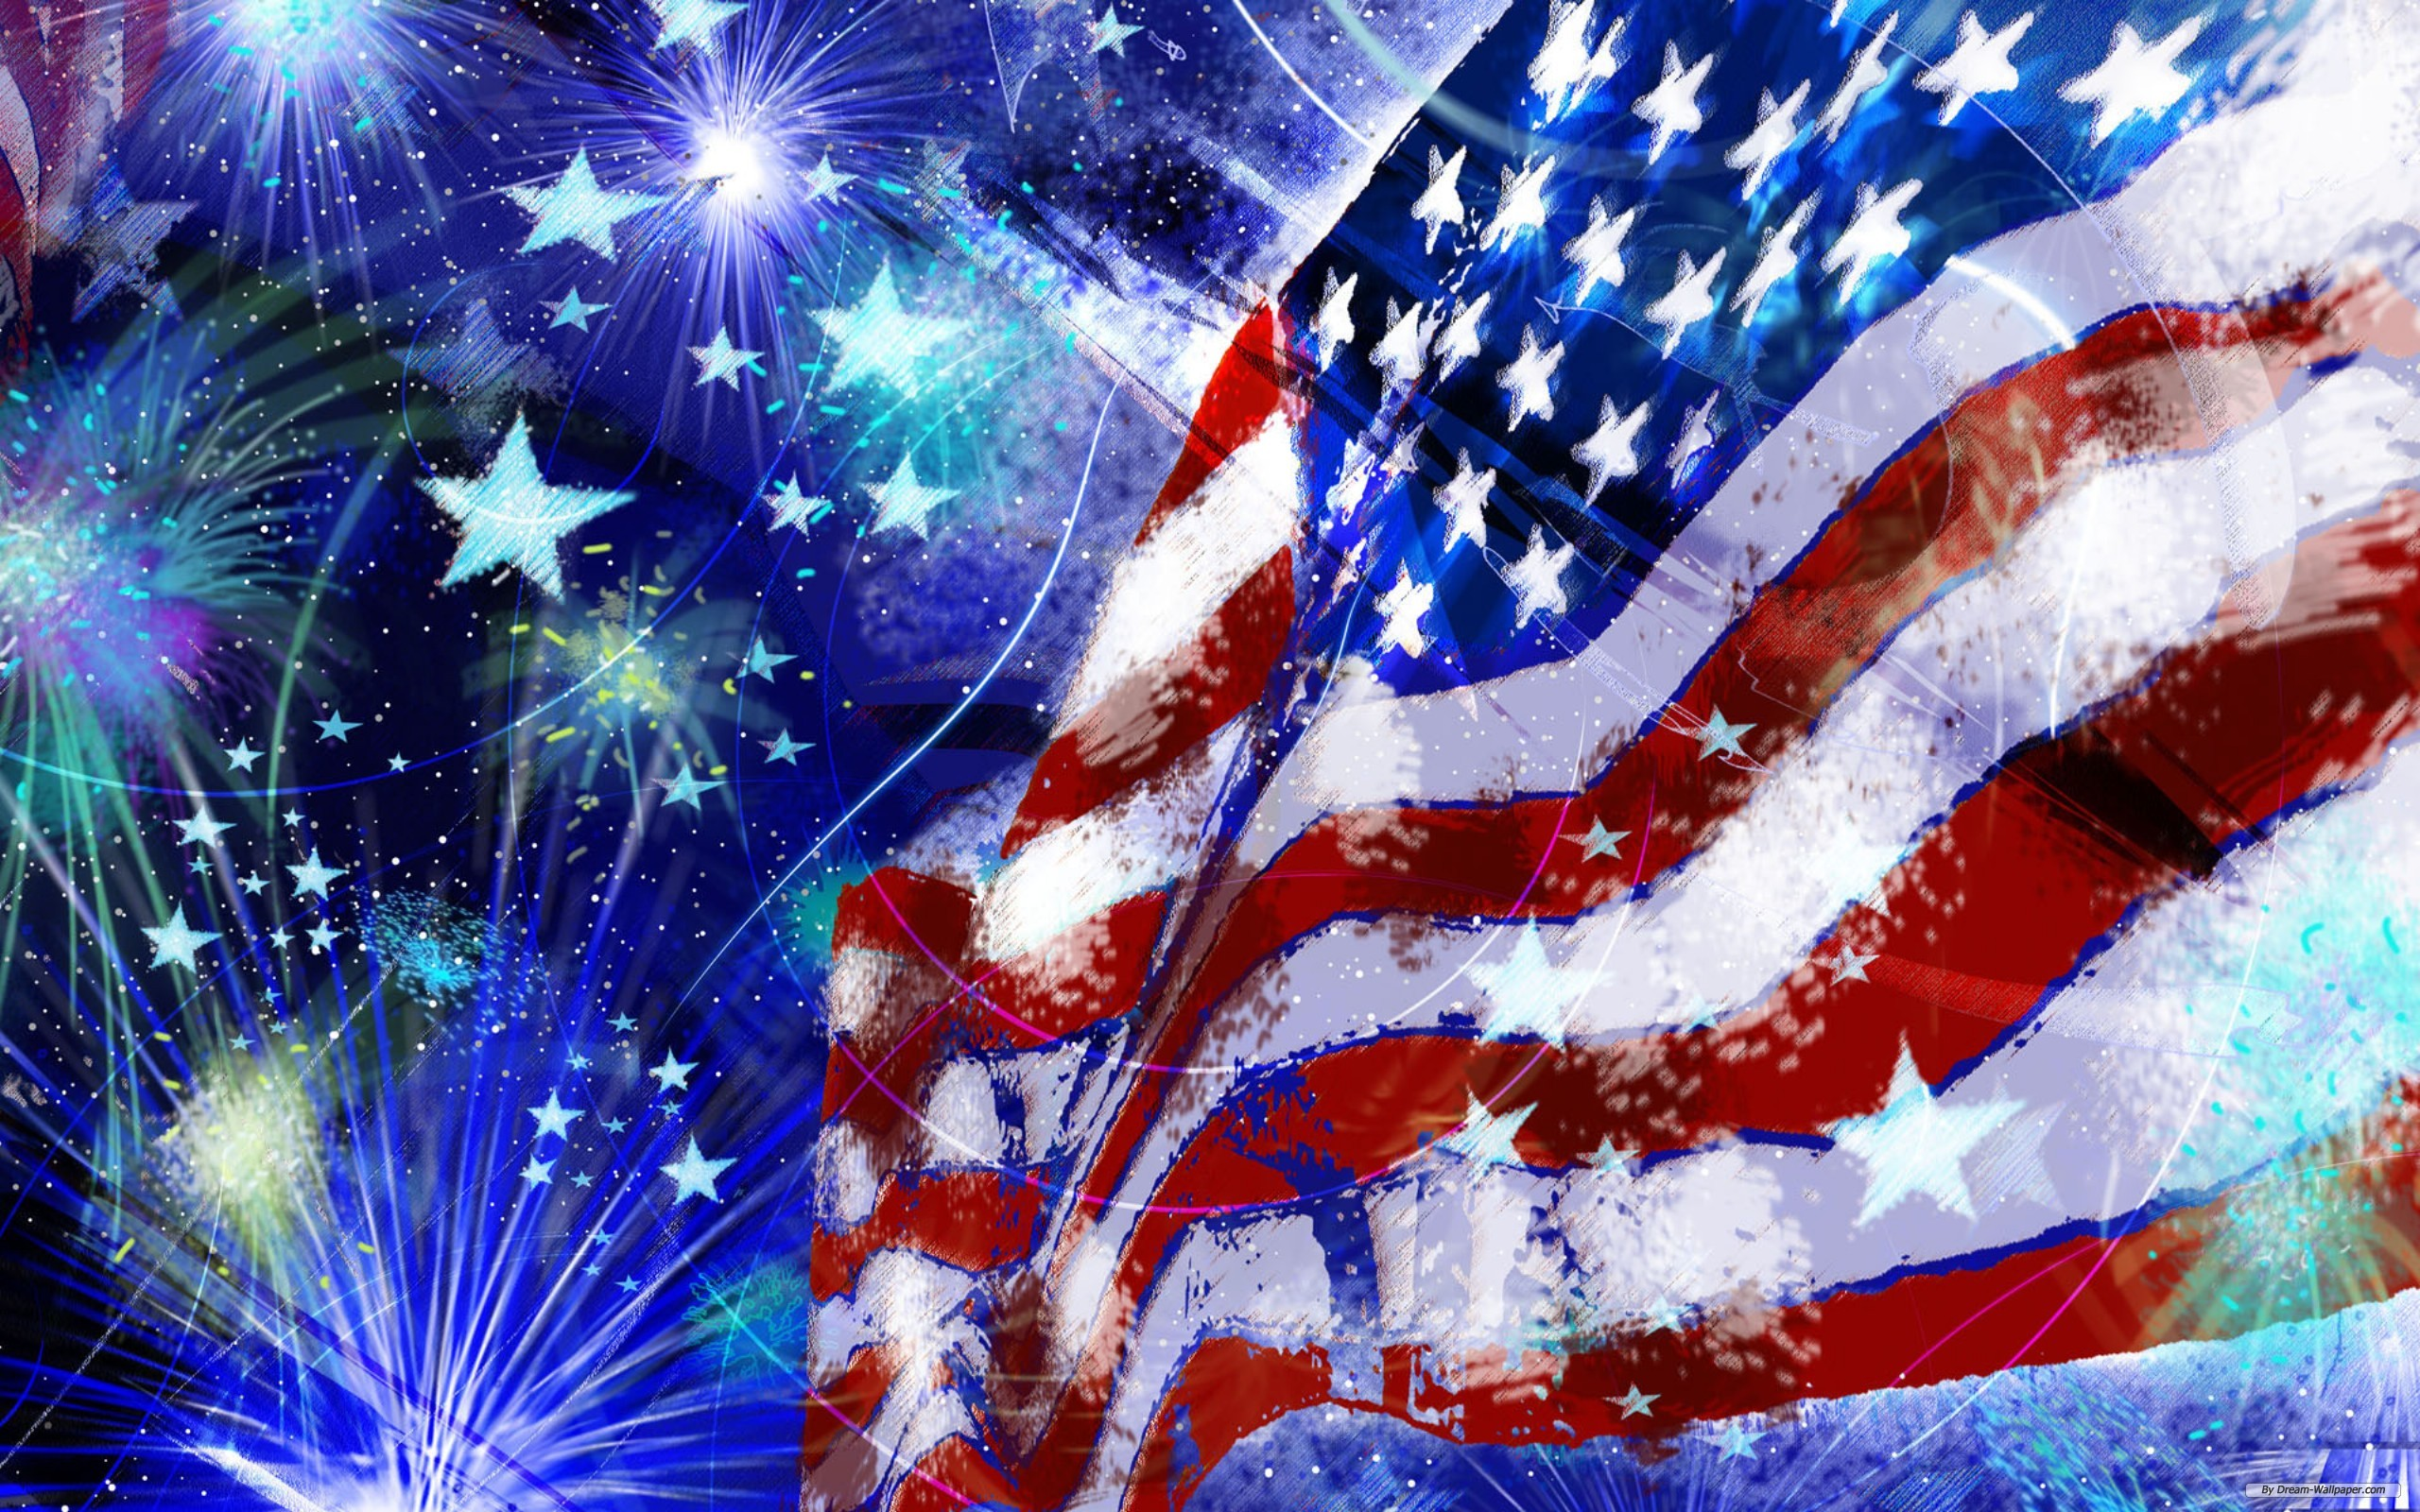 Wallpaper   Holiday wallpaper   Independence Day Episode 2 2560x1600